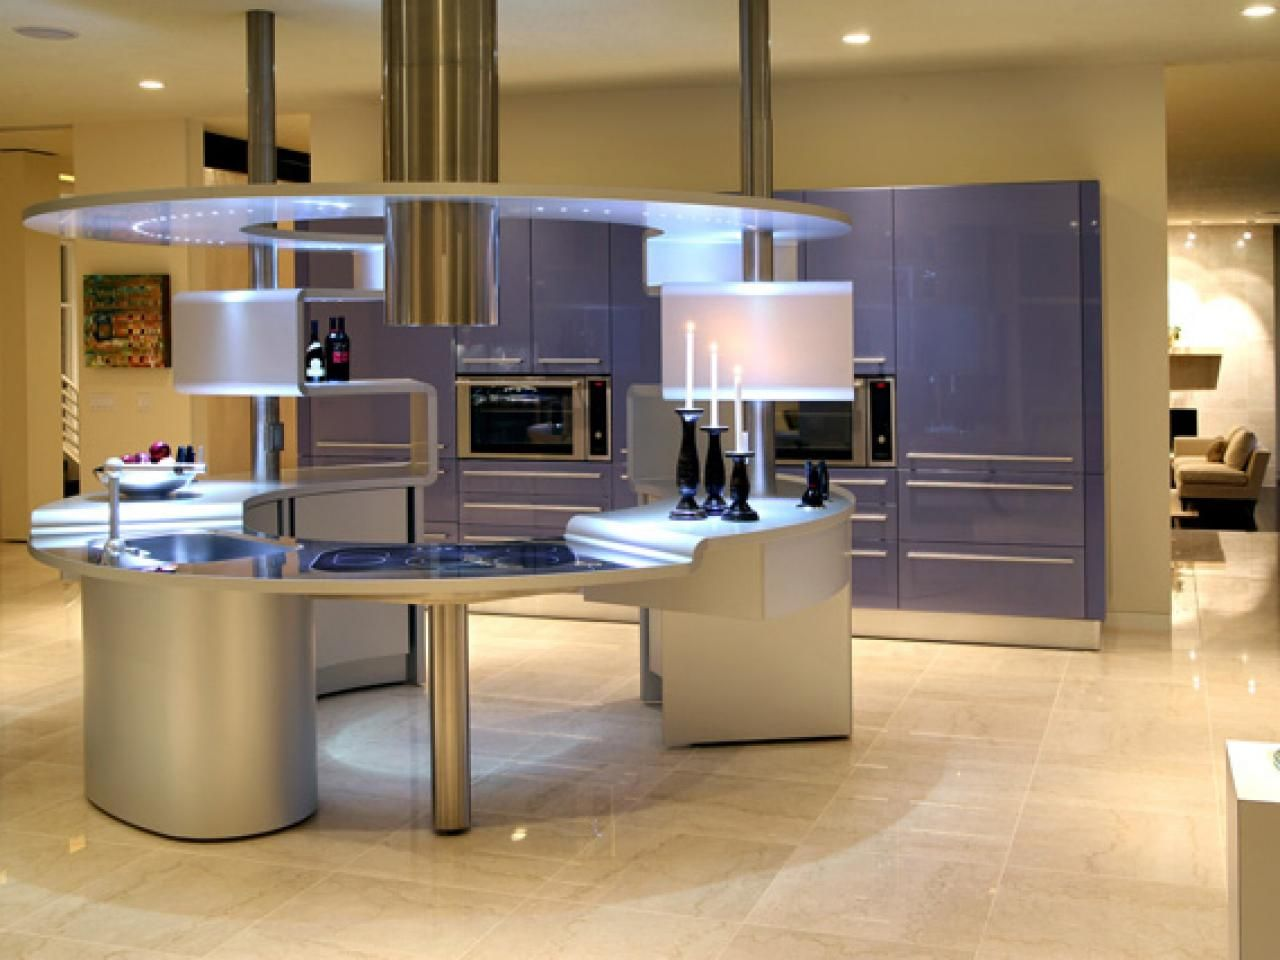 Kitchen Designer Salary Inspiration Designedpininfarina The Same Firm That Designs Ferraris This Decorating Inspiration